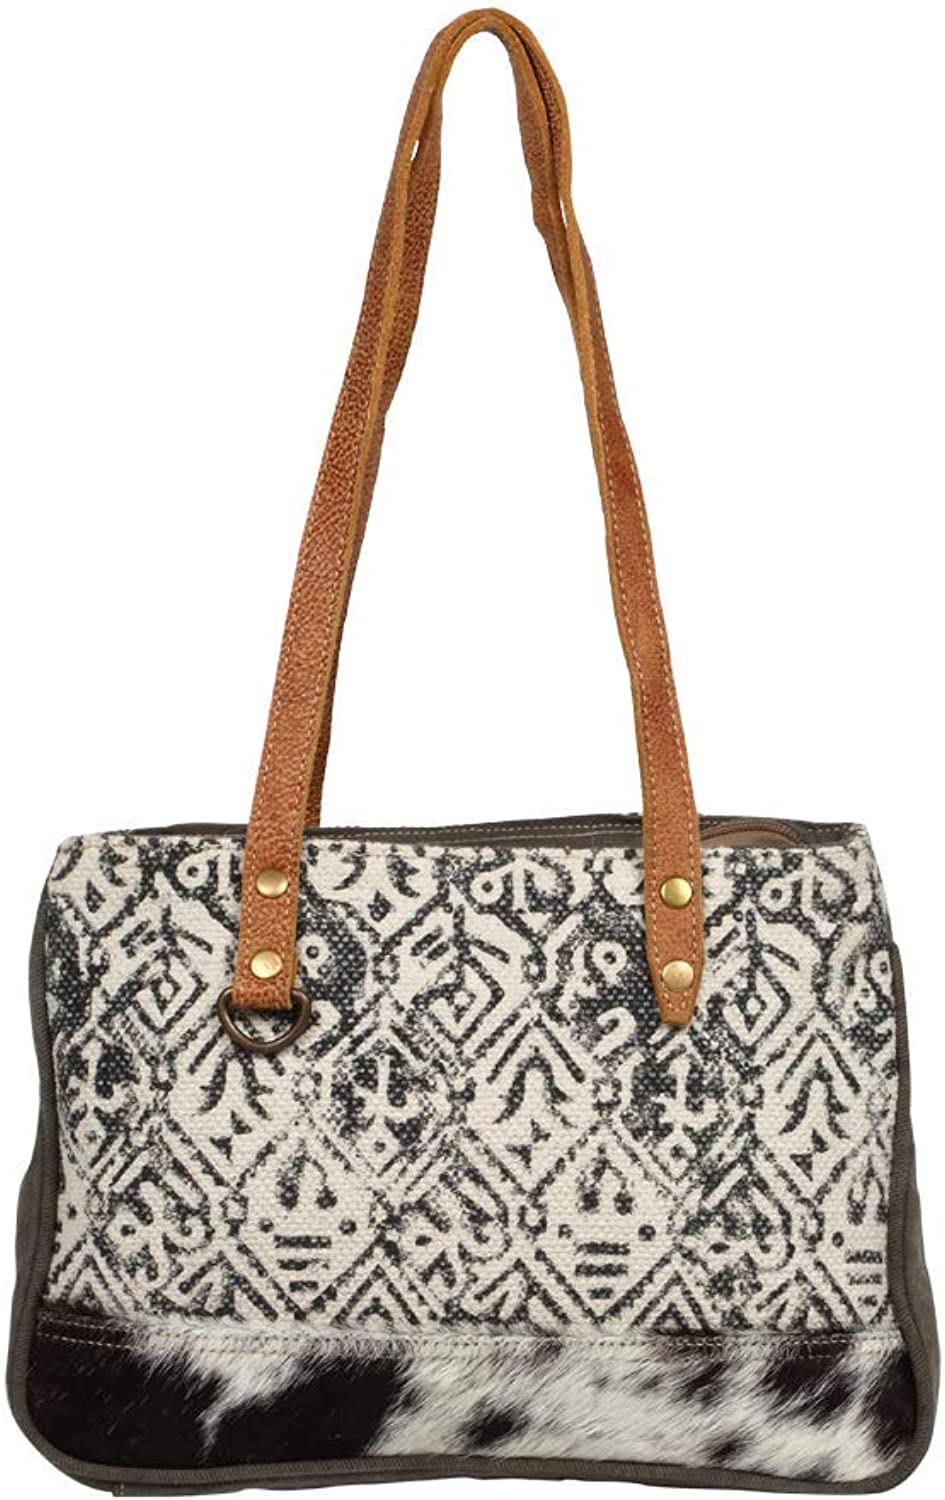 Myra Bag Spencer Upcycled Canvas & Cowhide Leather Bag S1246